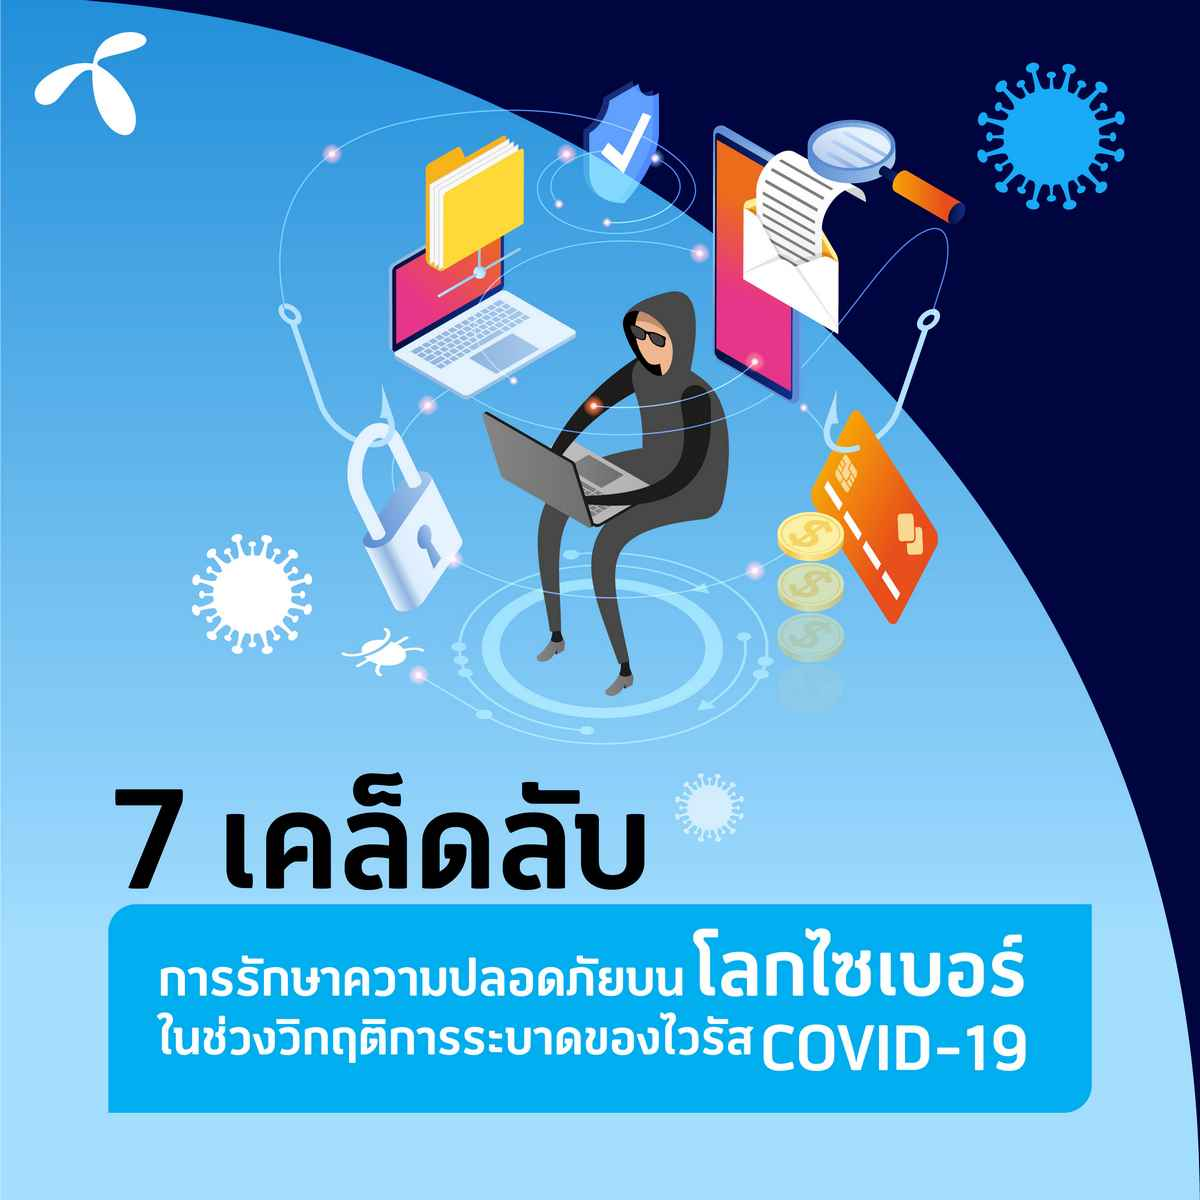 dtac shares 7 ways to stay safe from the cybercriminals exploiting COVID-19